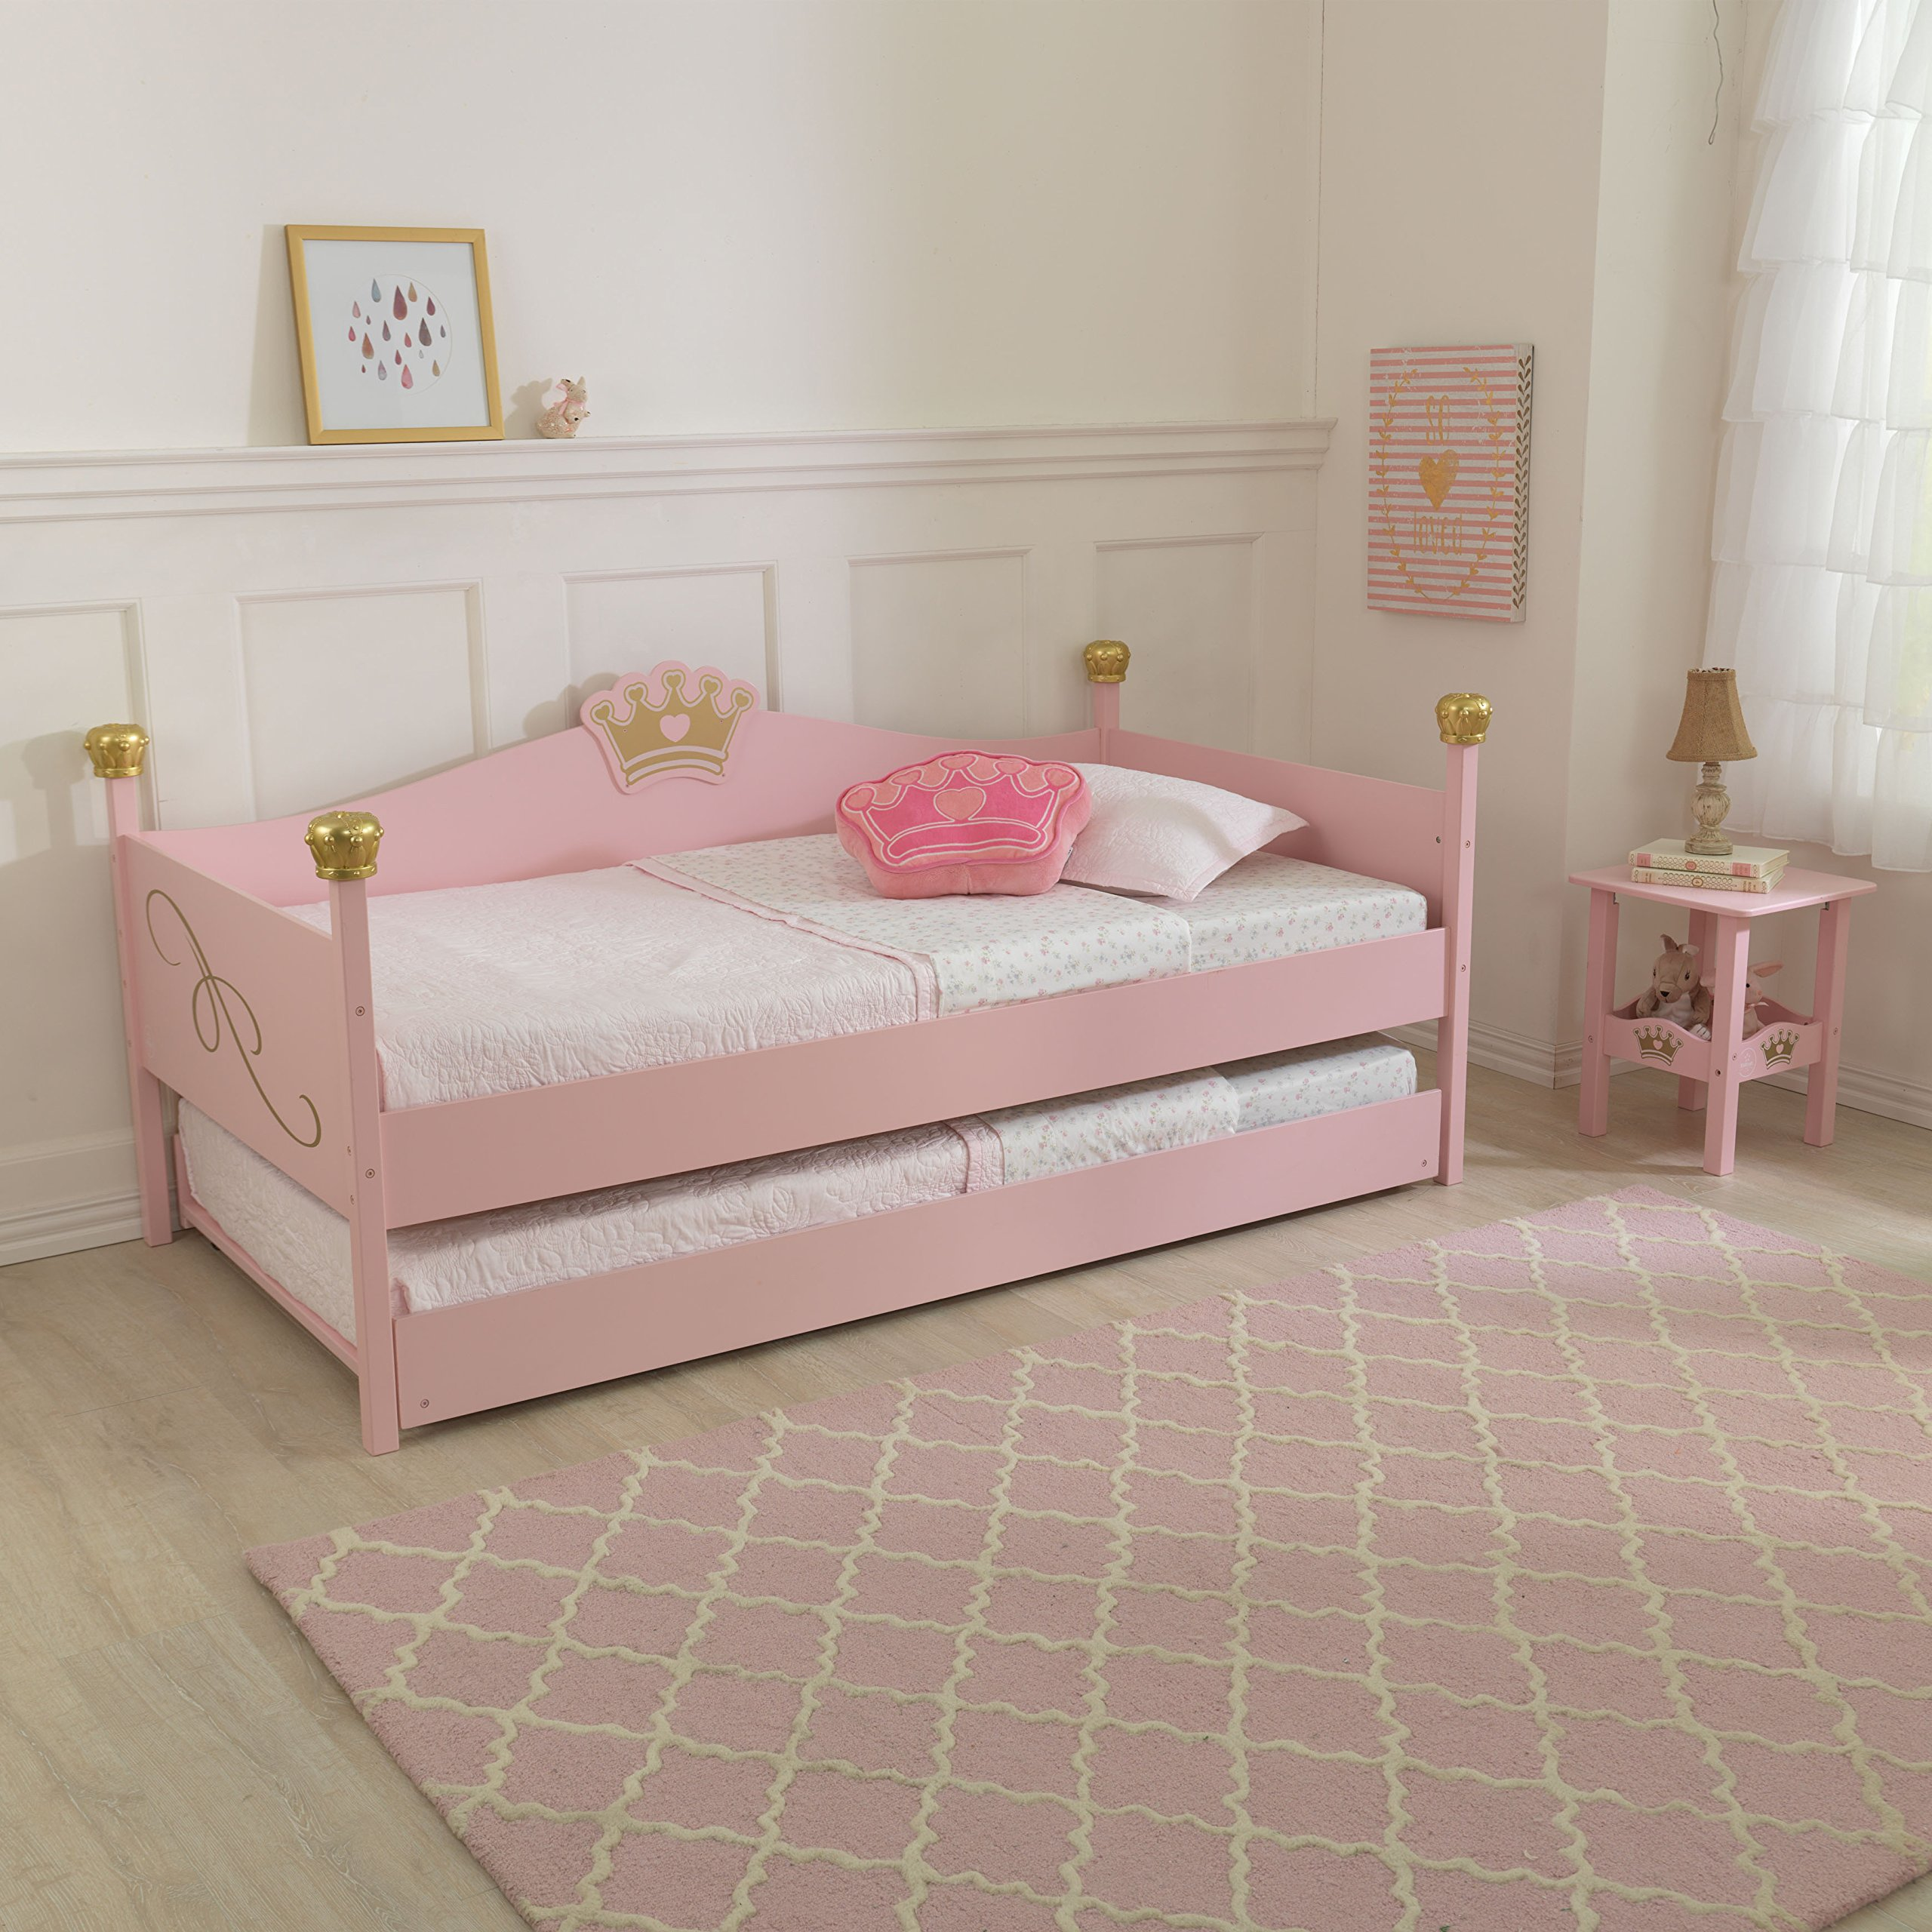 KidKraft Girls Twin Trundle Bed, Pink by KidKraft